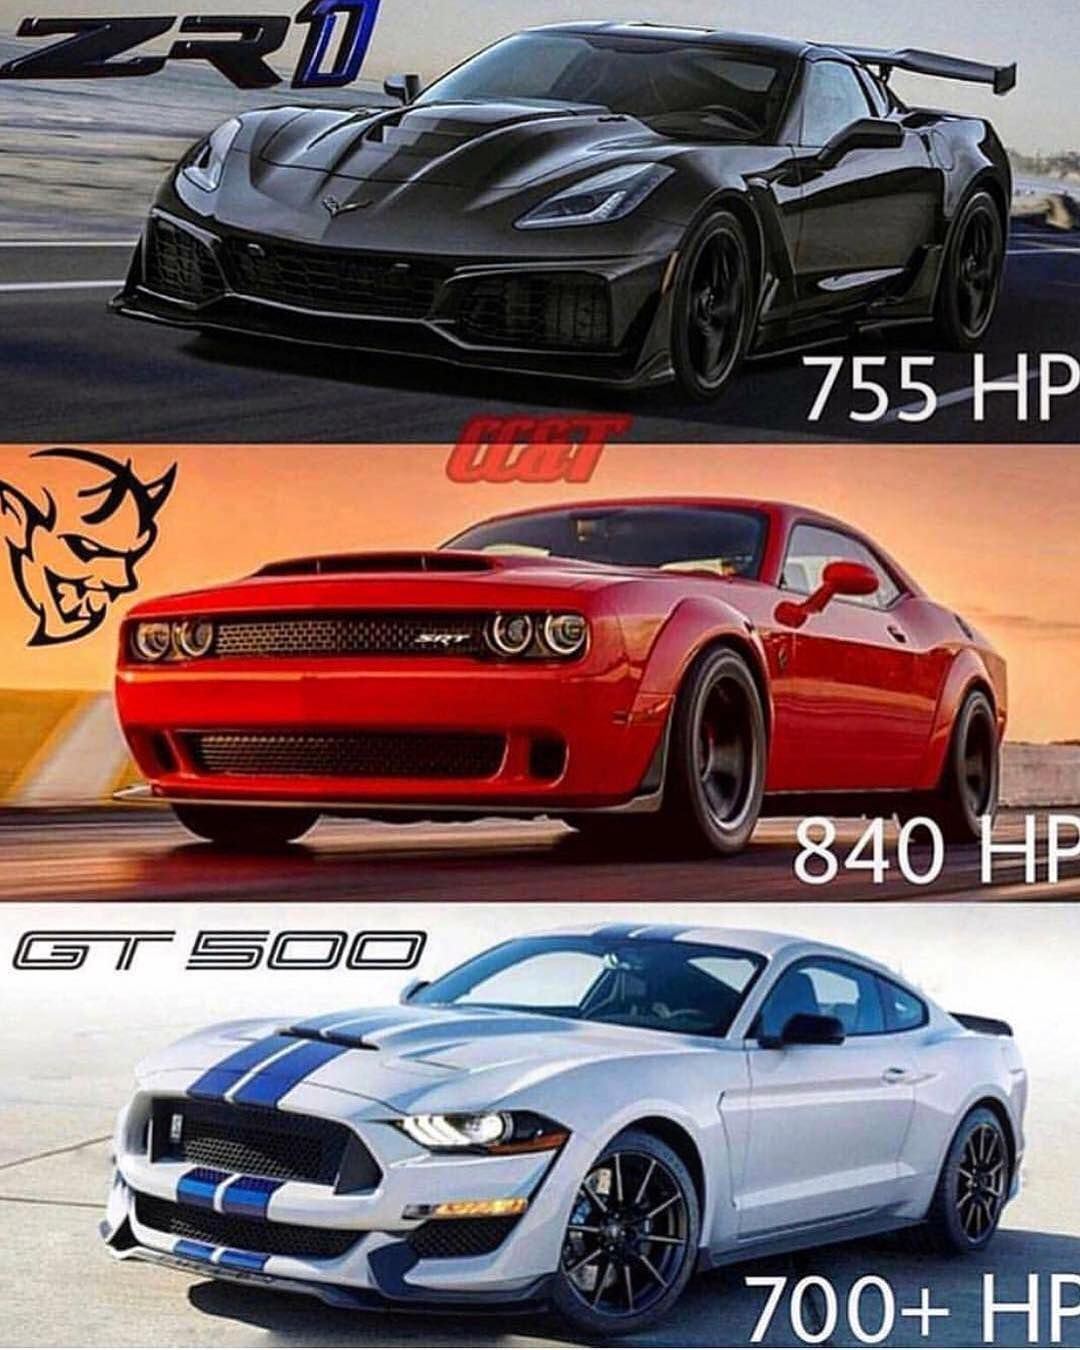 Muscle Cars Zr1 Demon Gt500 Americanmuscle